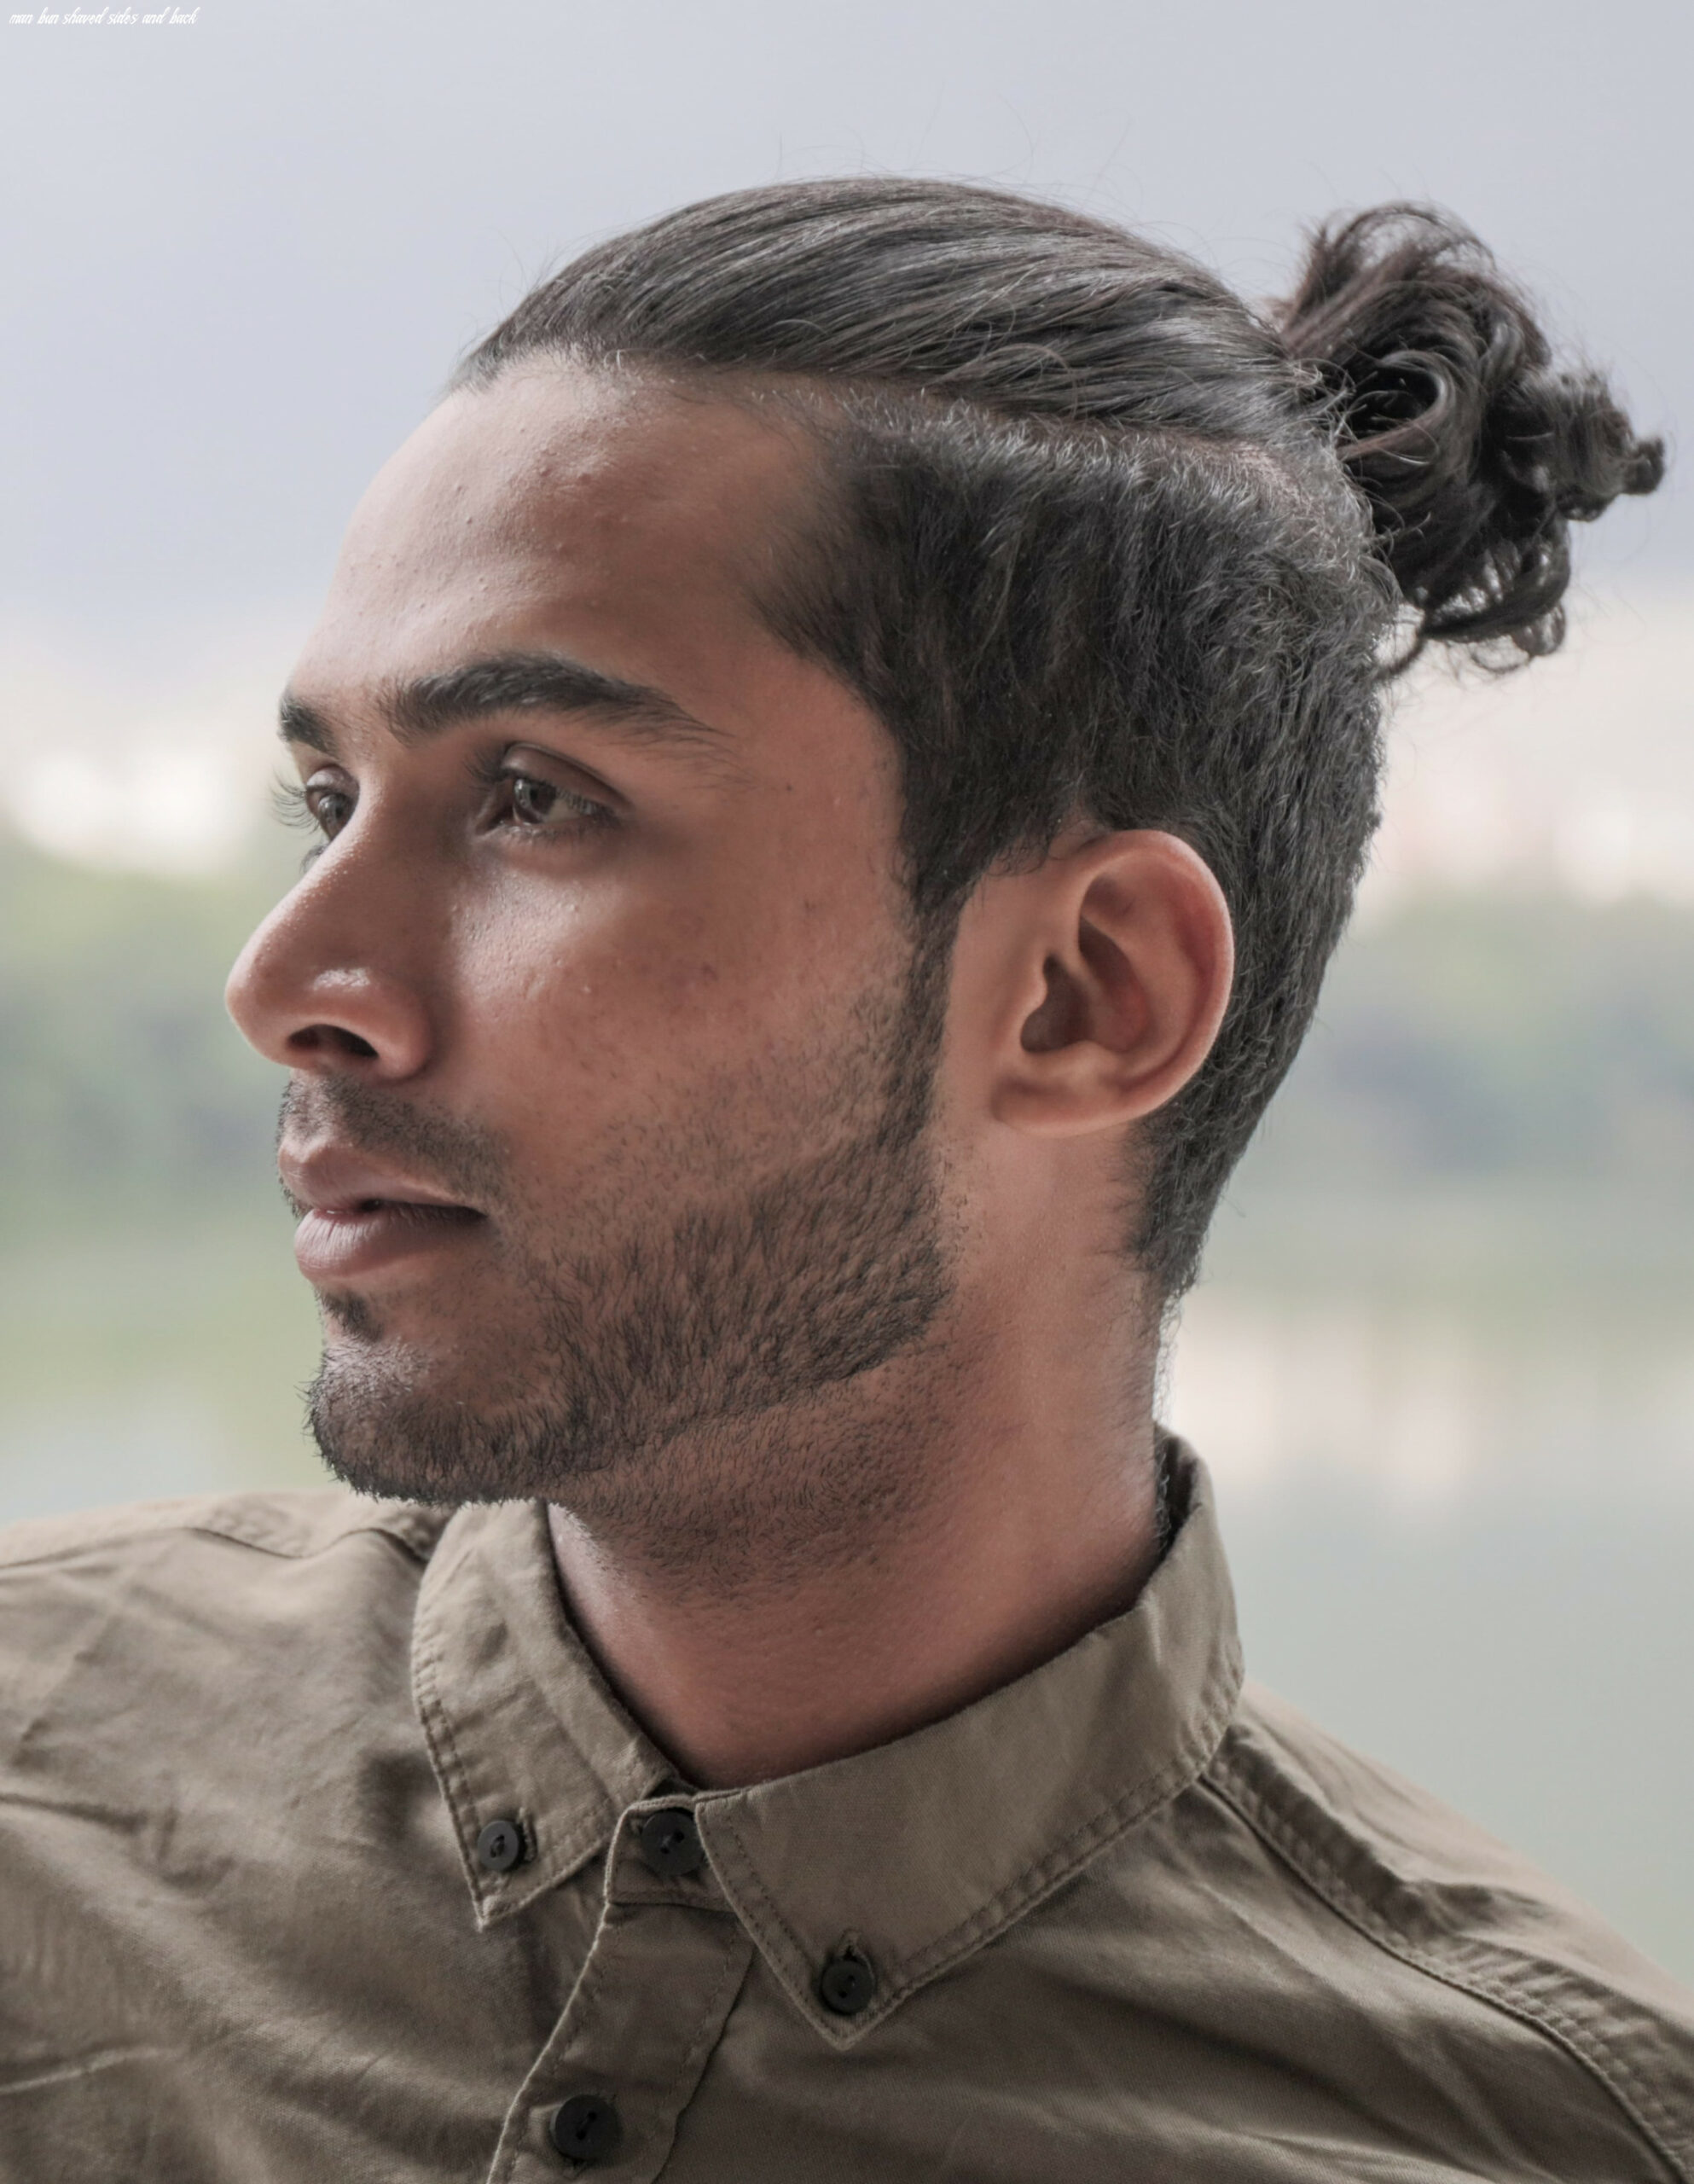 The top knot hairstyle visual guide for men (12 different styles) man bun shaved sides and back